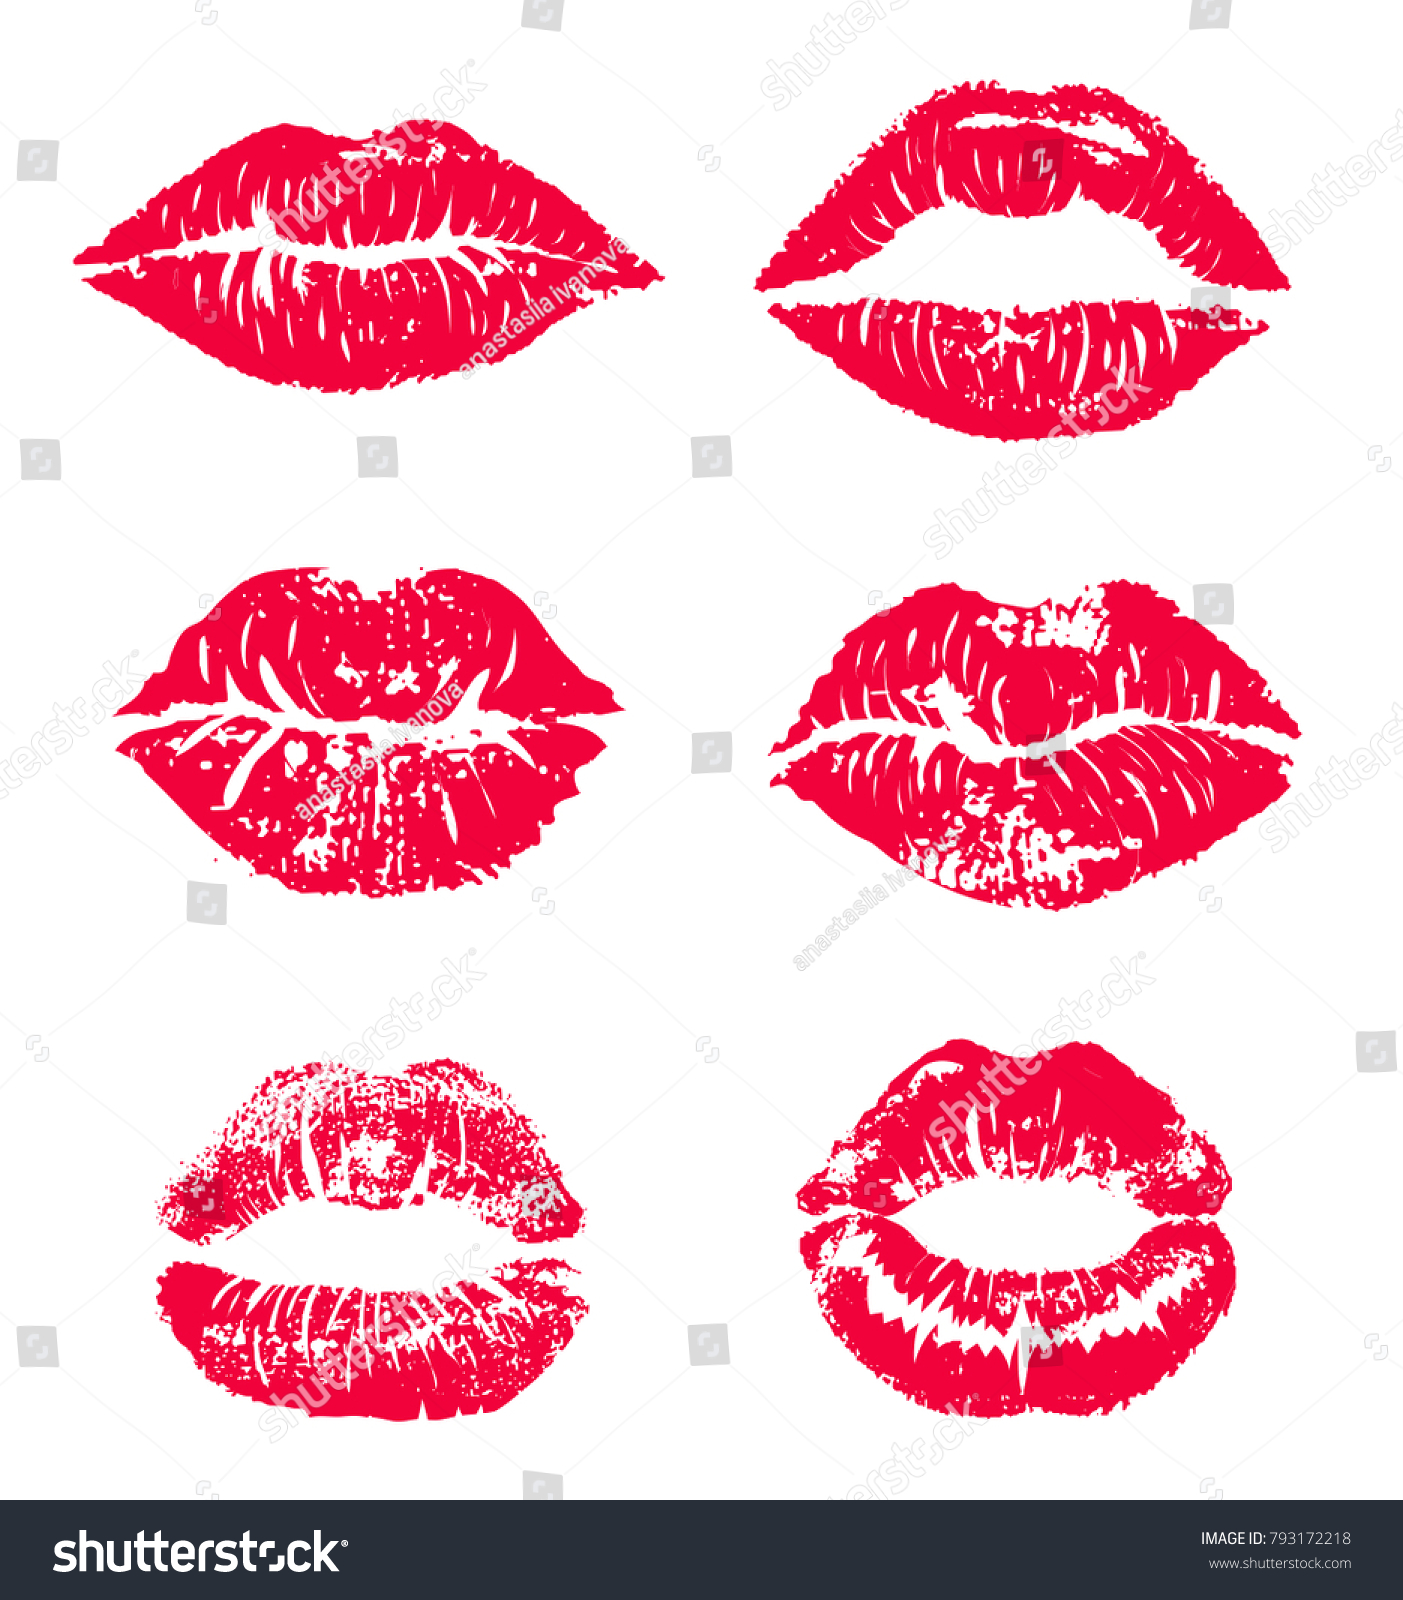 Lipstick kiss print isolated vector set. red vector lips set. Different shapes of female sexy red lips. Sexy lips makeup, kiss mouth. Female mouth. Print of lips kiss vector background.